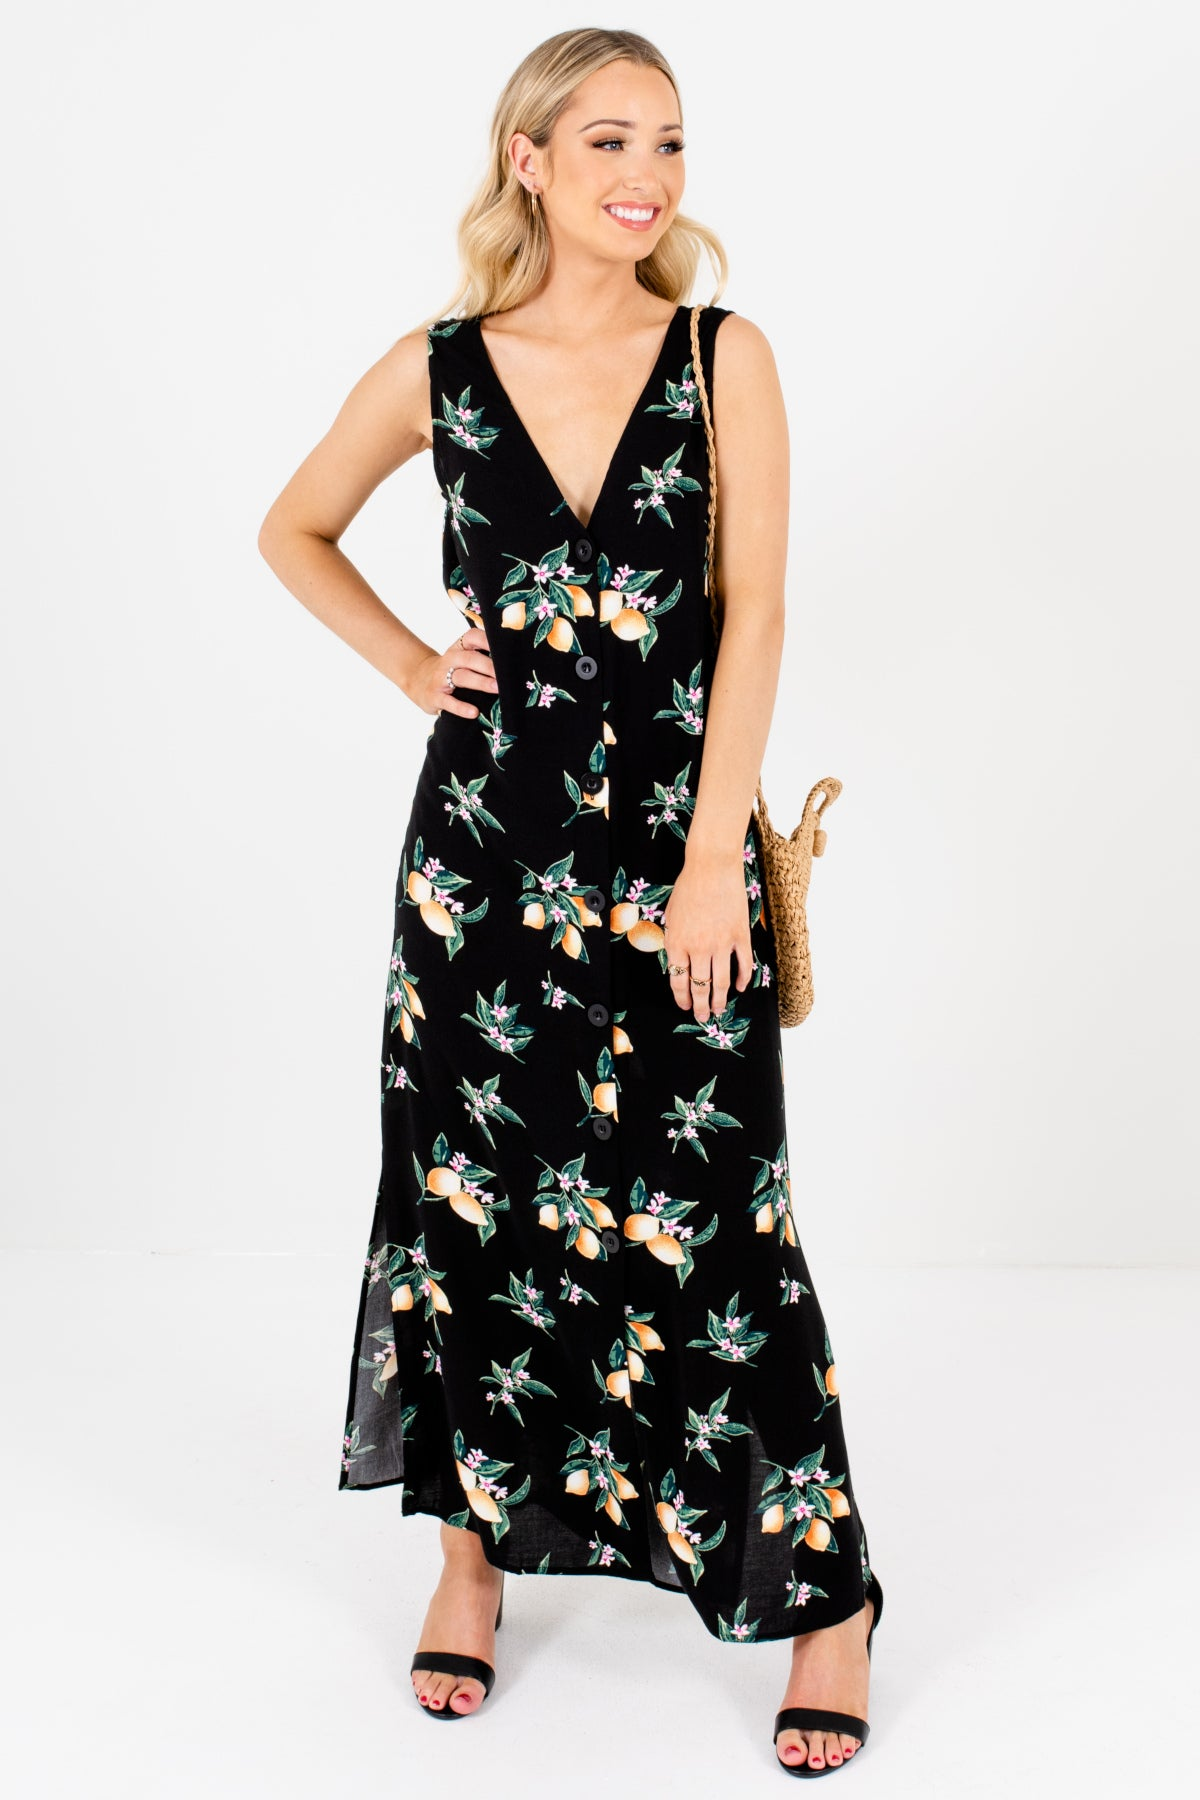 Black Lemon Floral Print Button-Up Maxi Dresses Affordable Online Boutique